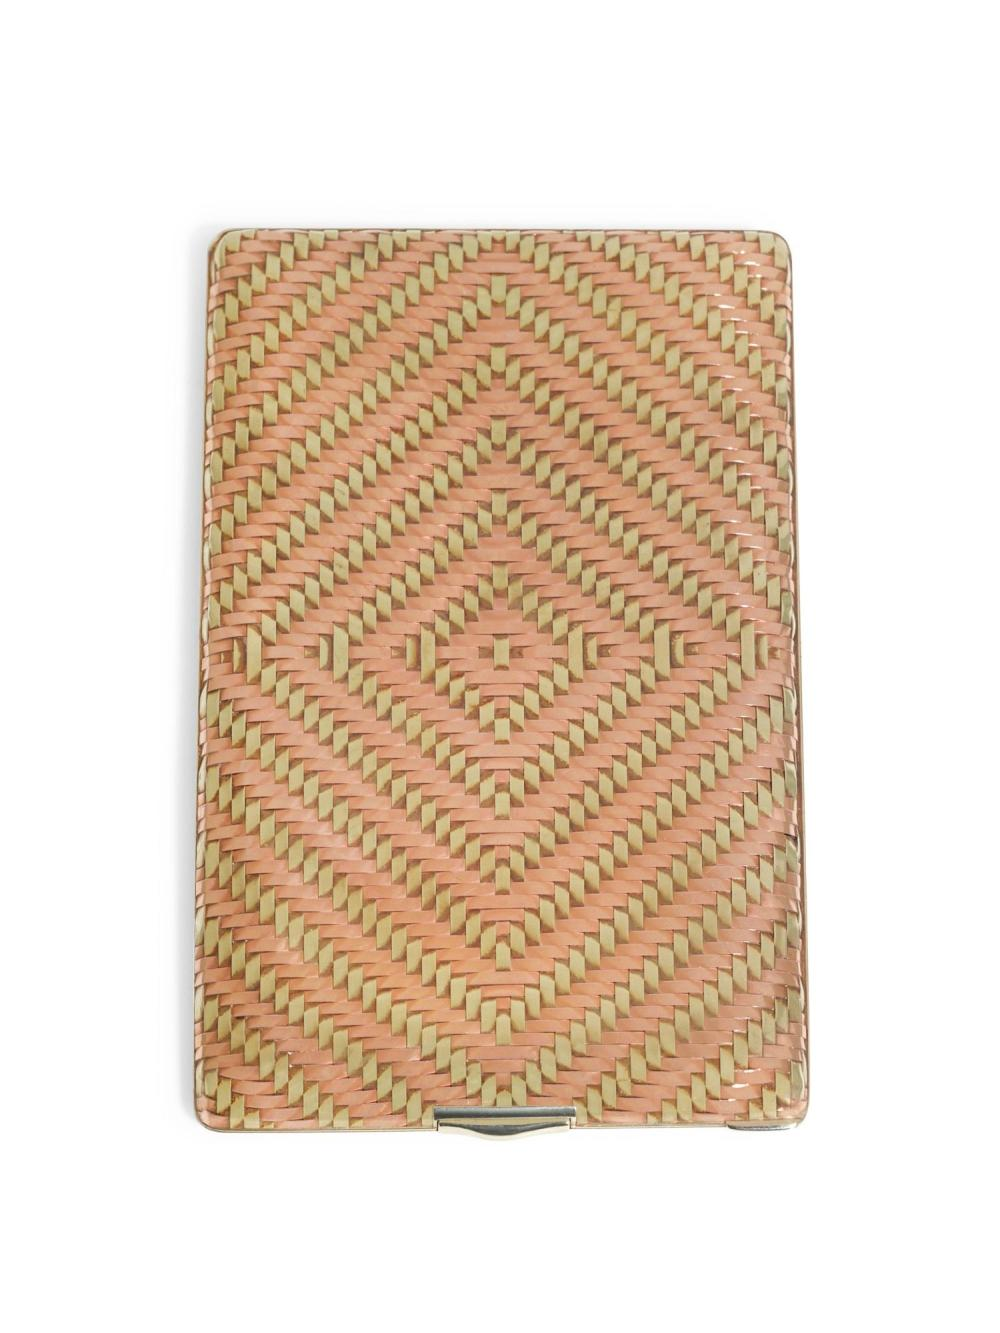 A TWO-COLOUR GOLD WOVEN CIGARETTE CASE, CARTIER NEW YORK, CIRCA 1940 |